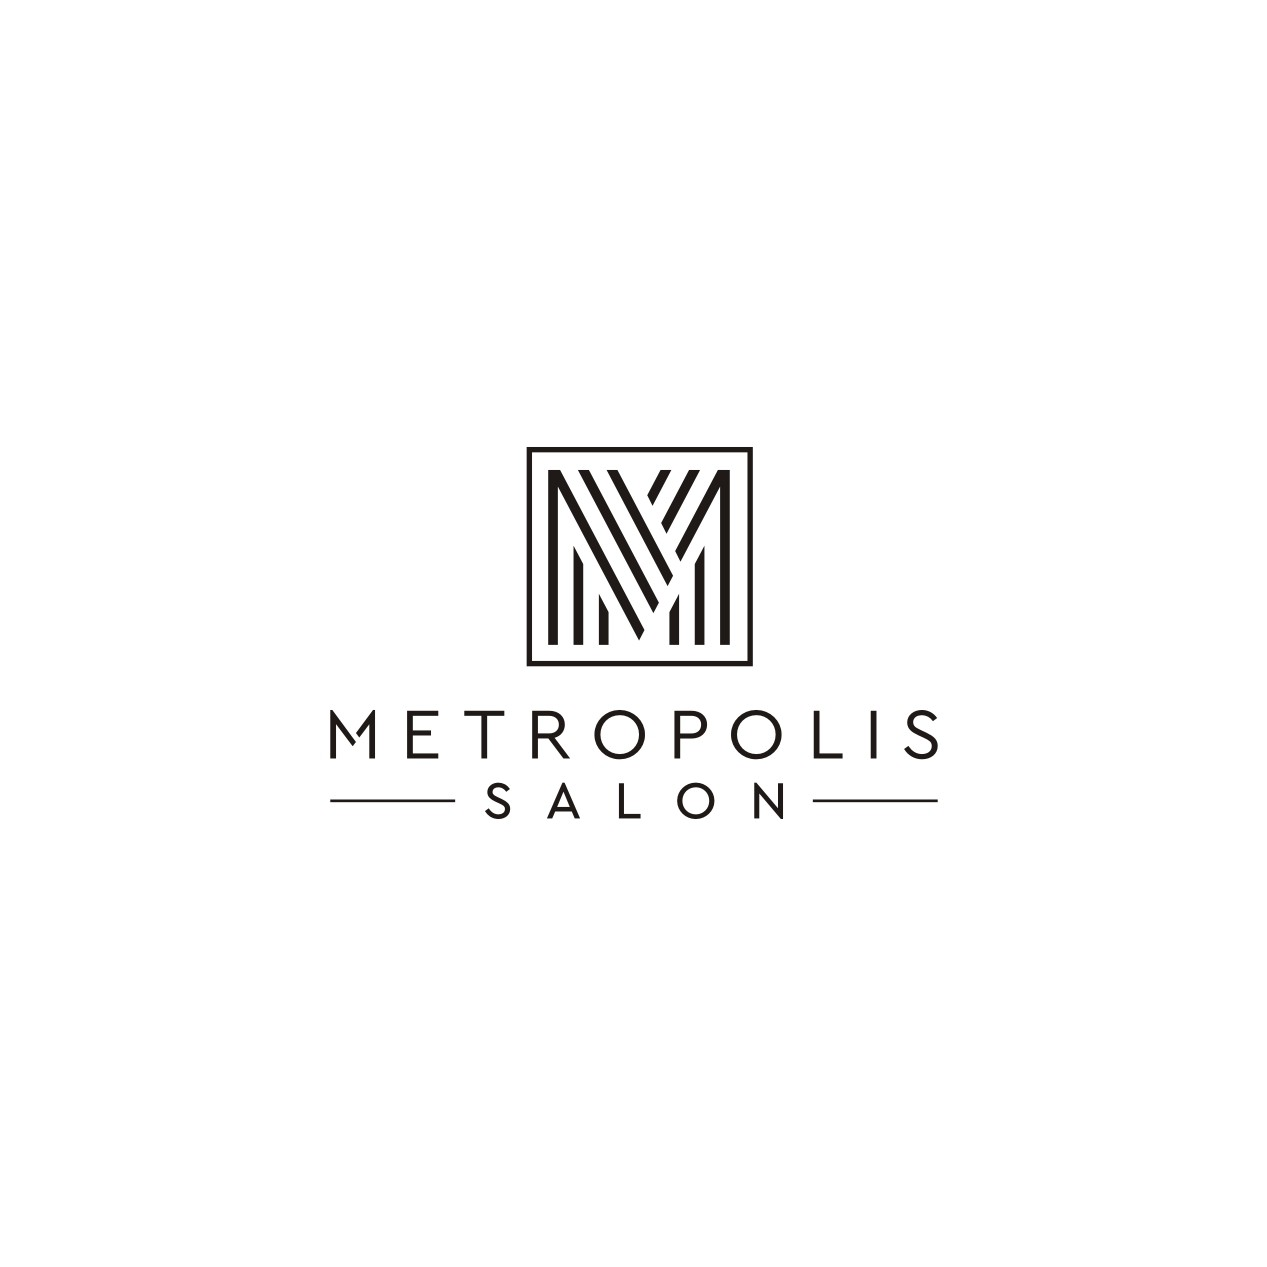 Elevated Logo for a Modern Salon Catering to Upper Middle Class - Wealthy Women